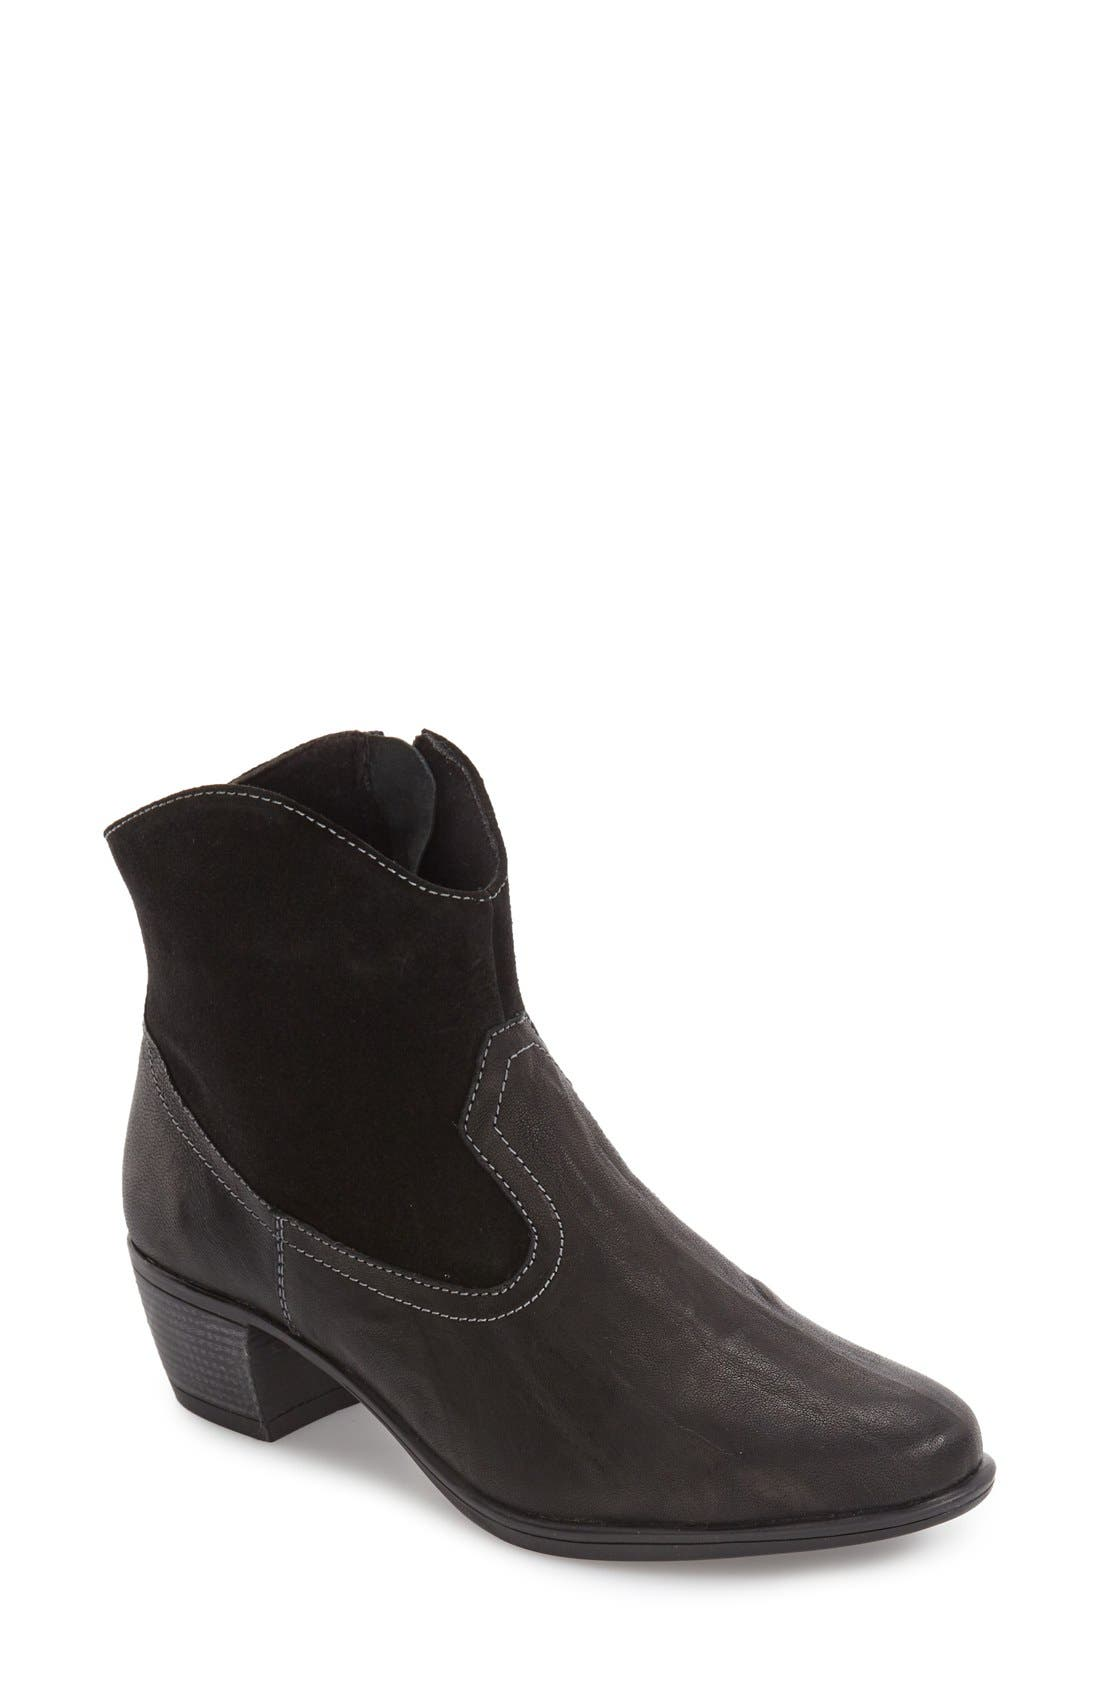 Laramie Bootie,                         Main,                         color, BLACK LEATHER